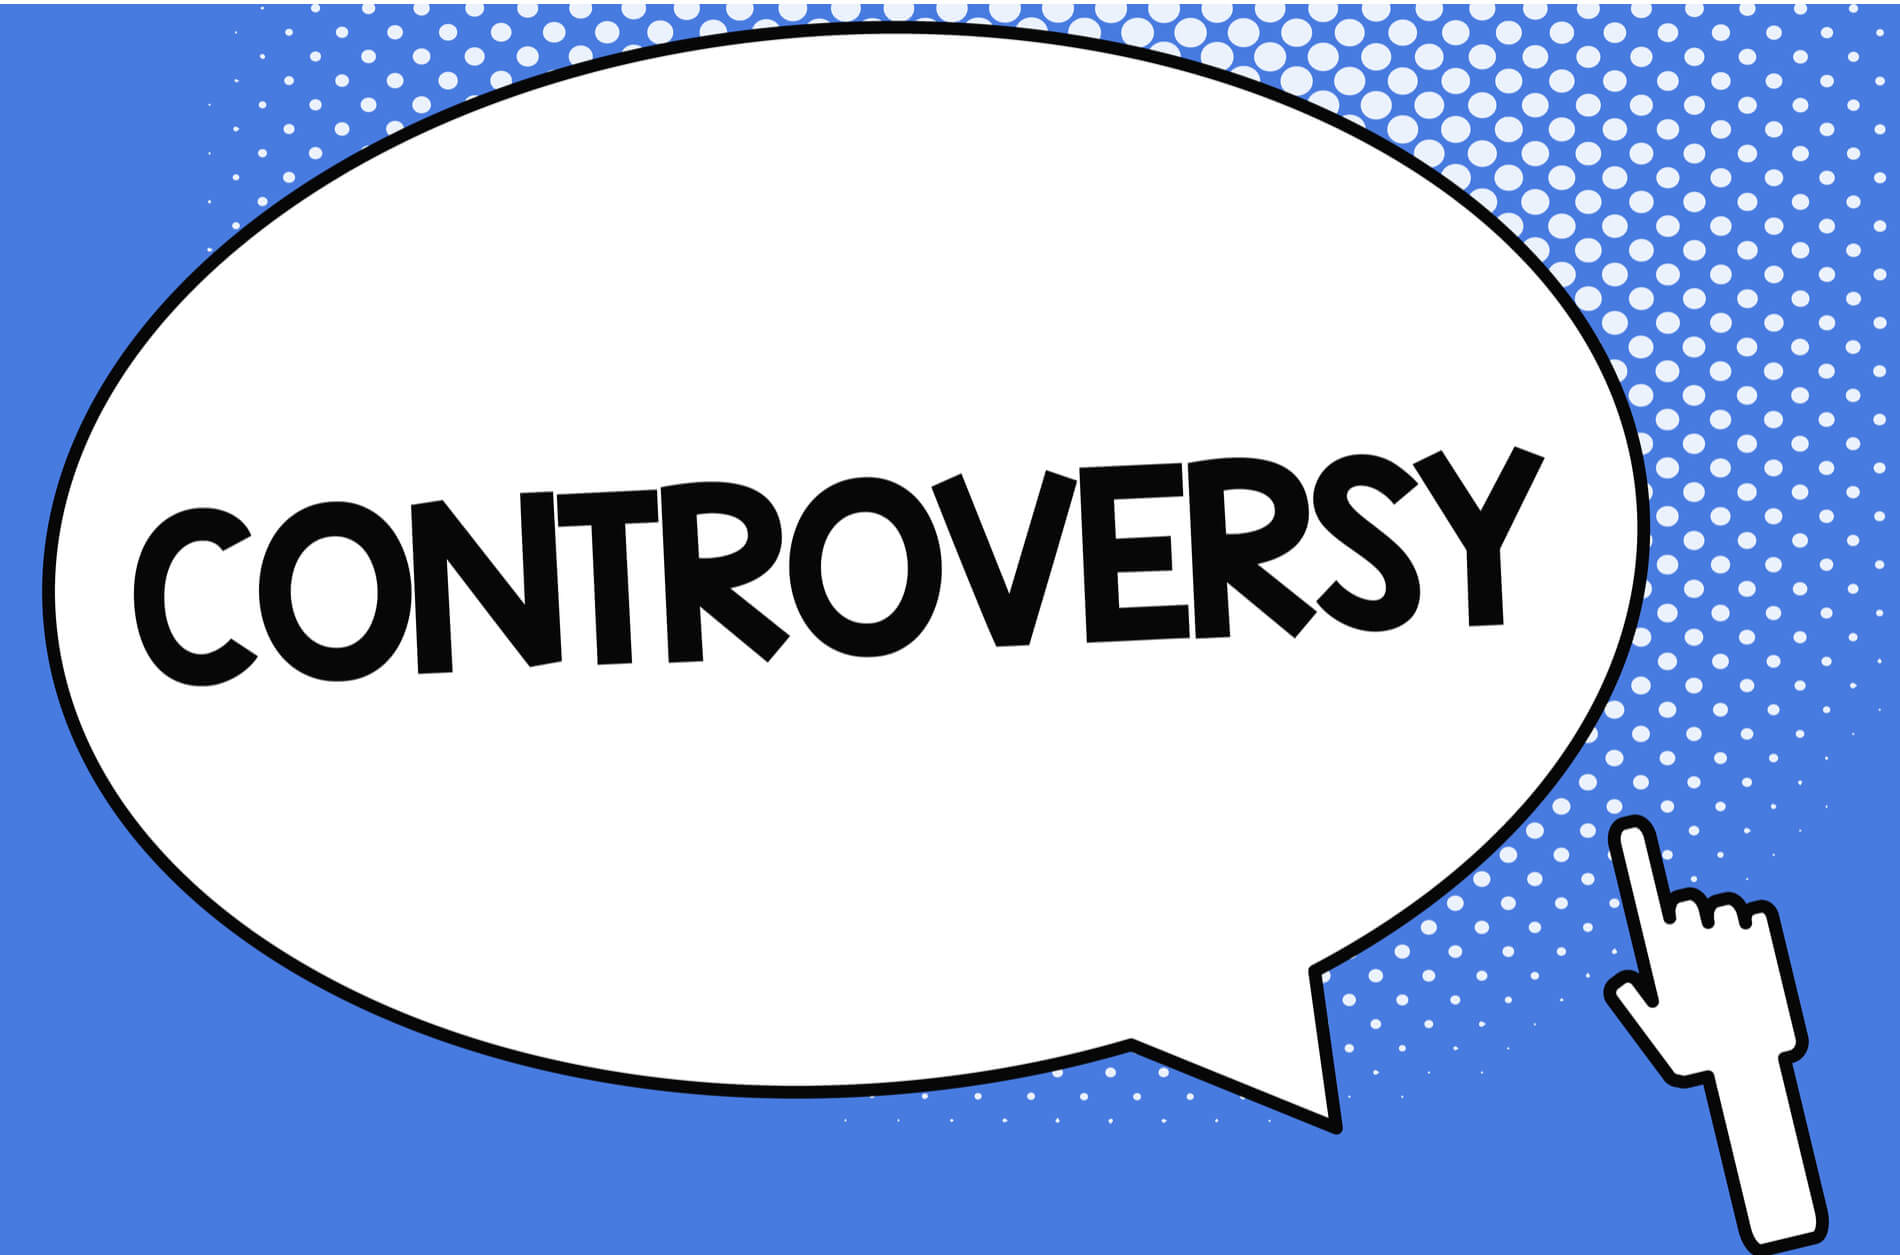 Should Your Dental Practice Take a Bold Stance on Controversial Topics?